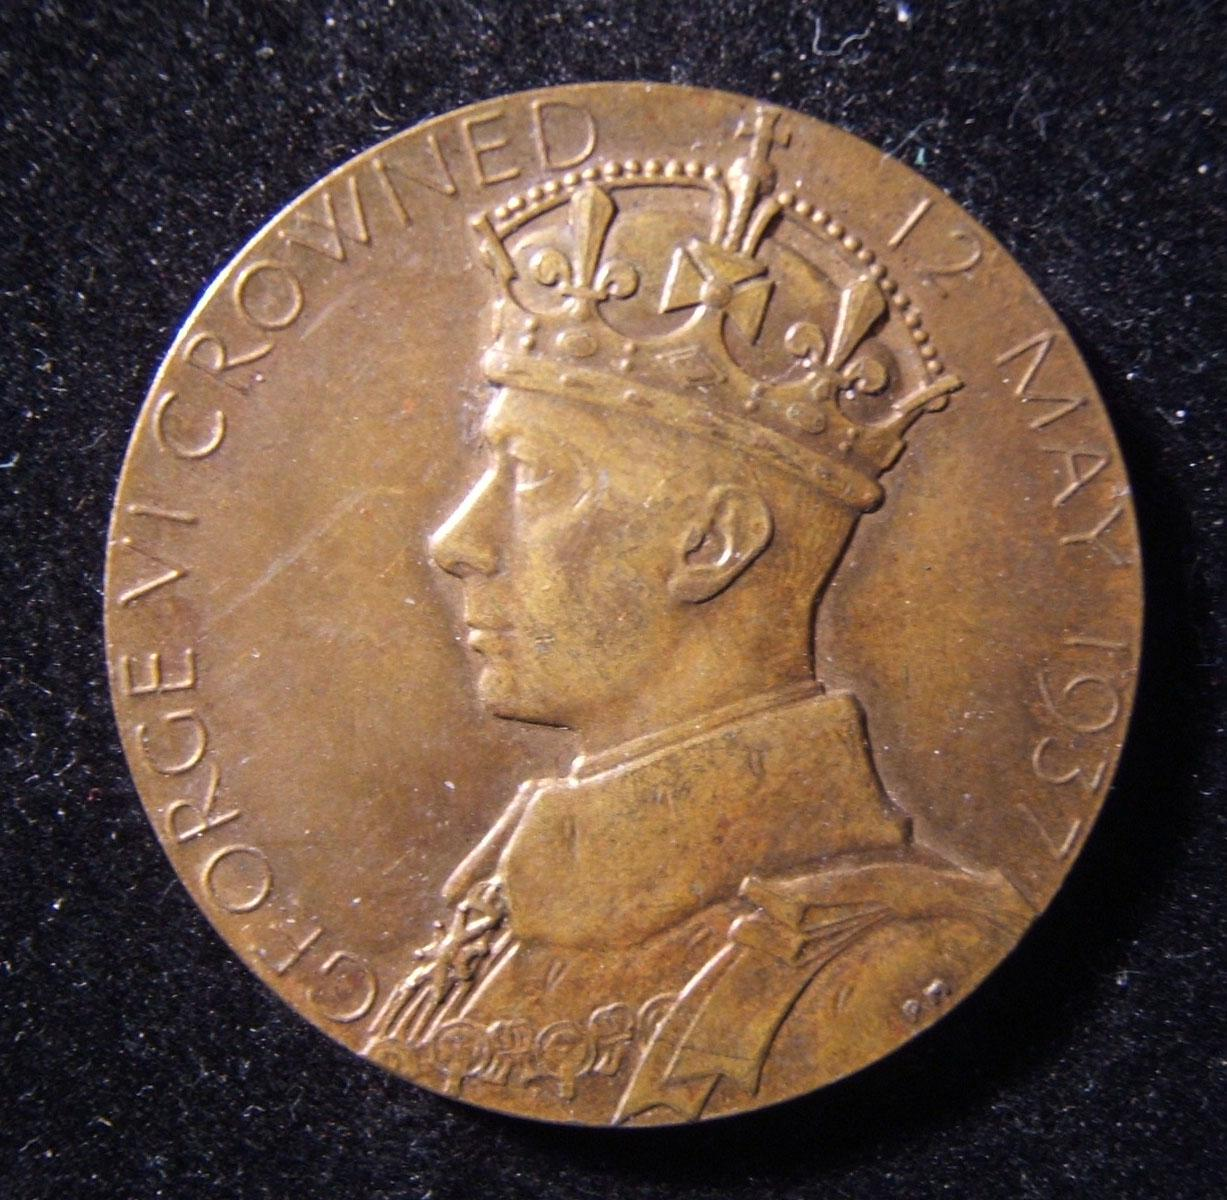 Great Britain, Coronation of King George VI coin, 1937; struck in bronze; by Percy Metcalfe; weight: 15.7g; size: 31.75mm. Obverse depicts George VI facing left; reverse depicts Qu